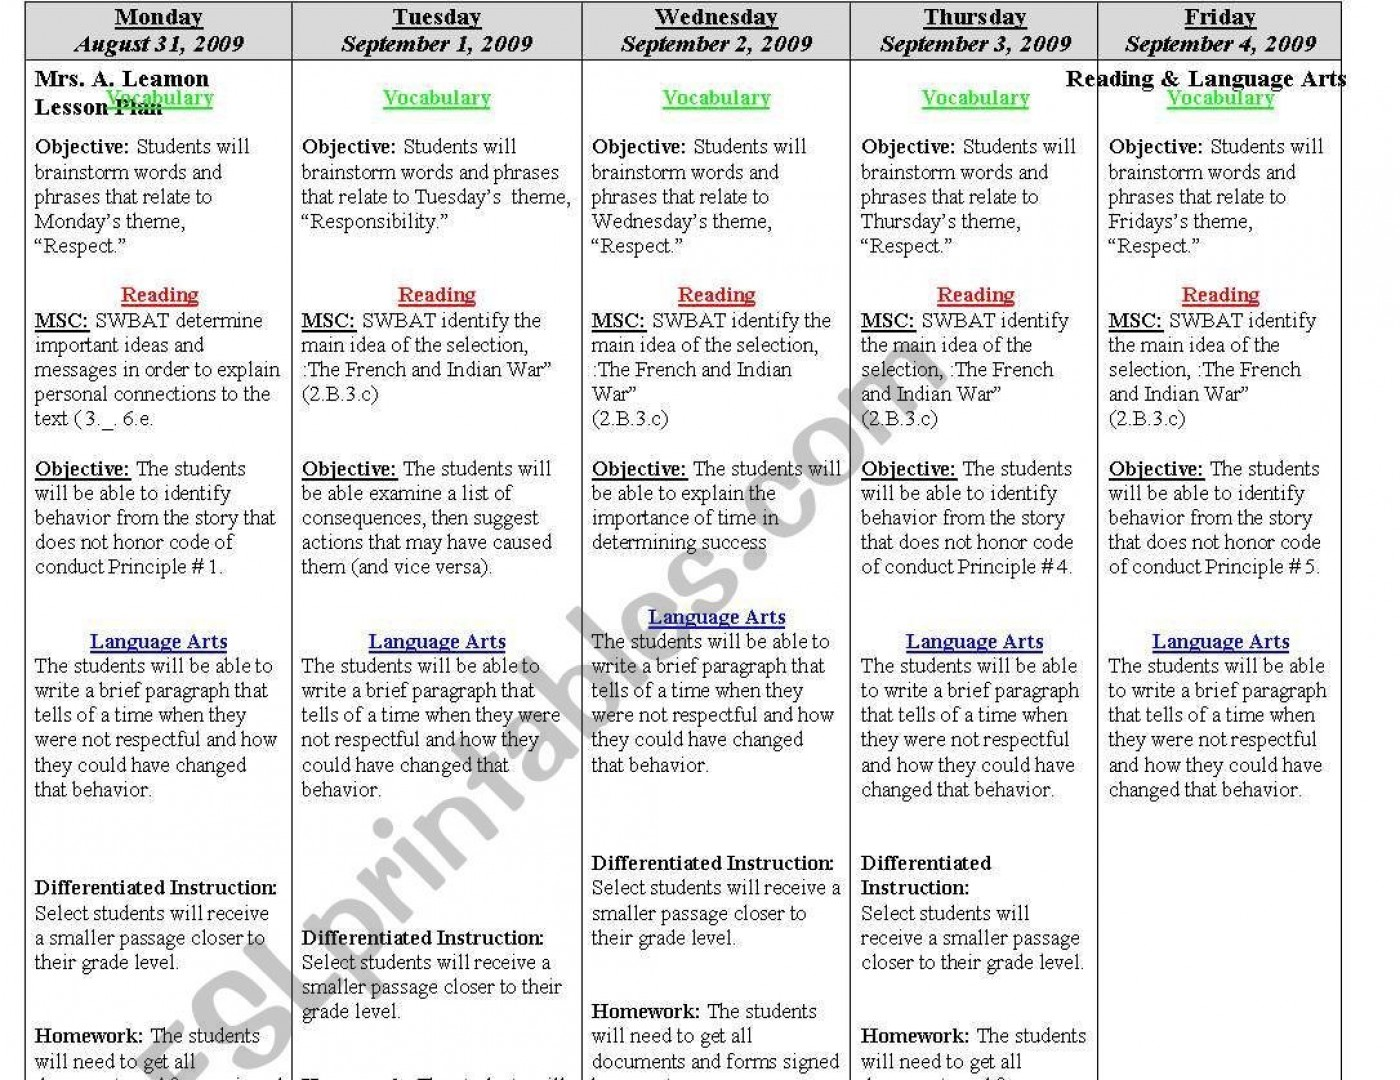 000 Archaicawful Weekly Lesson Plan Template Editable Highest Quality  Google Doc Preschool Downloadable Free1400